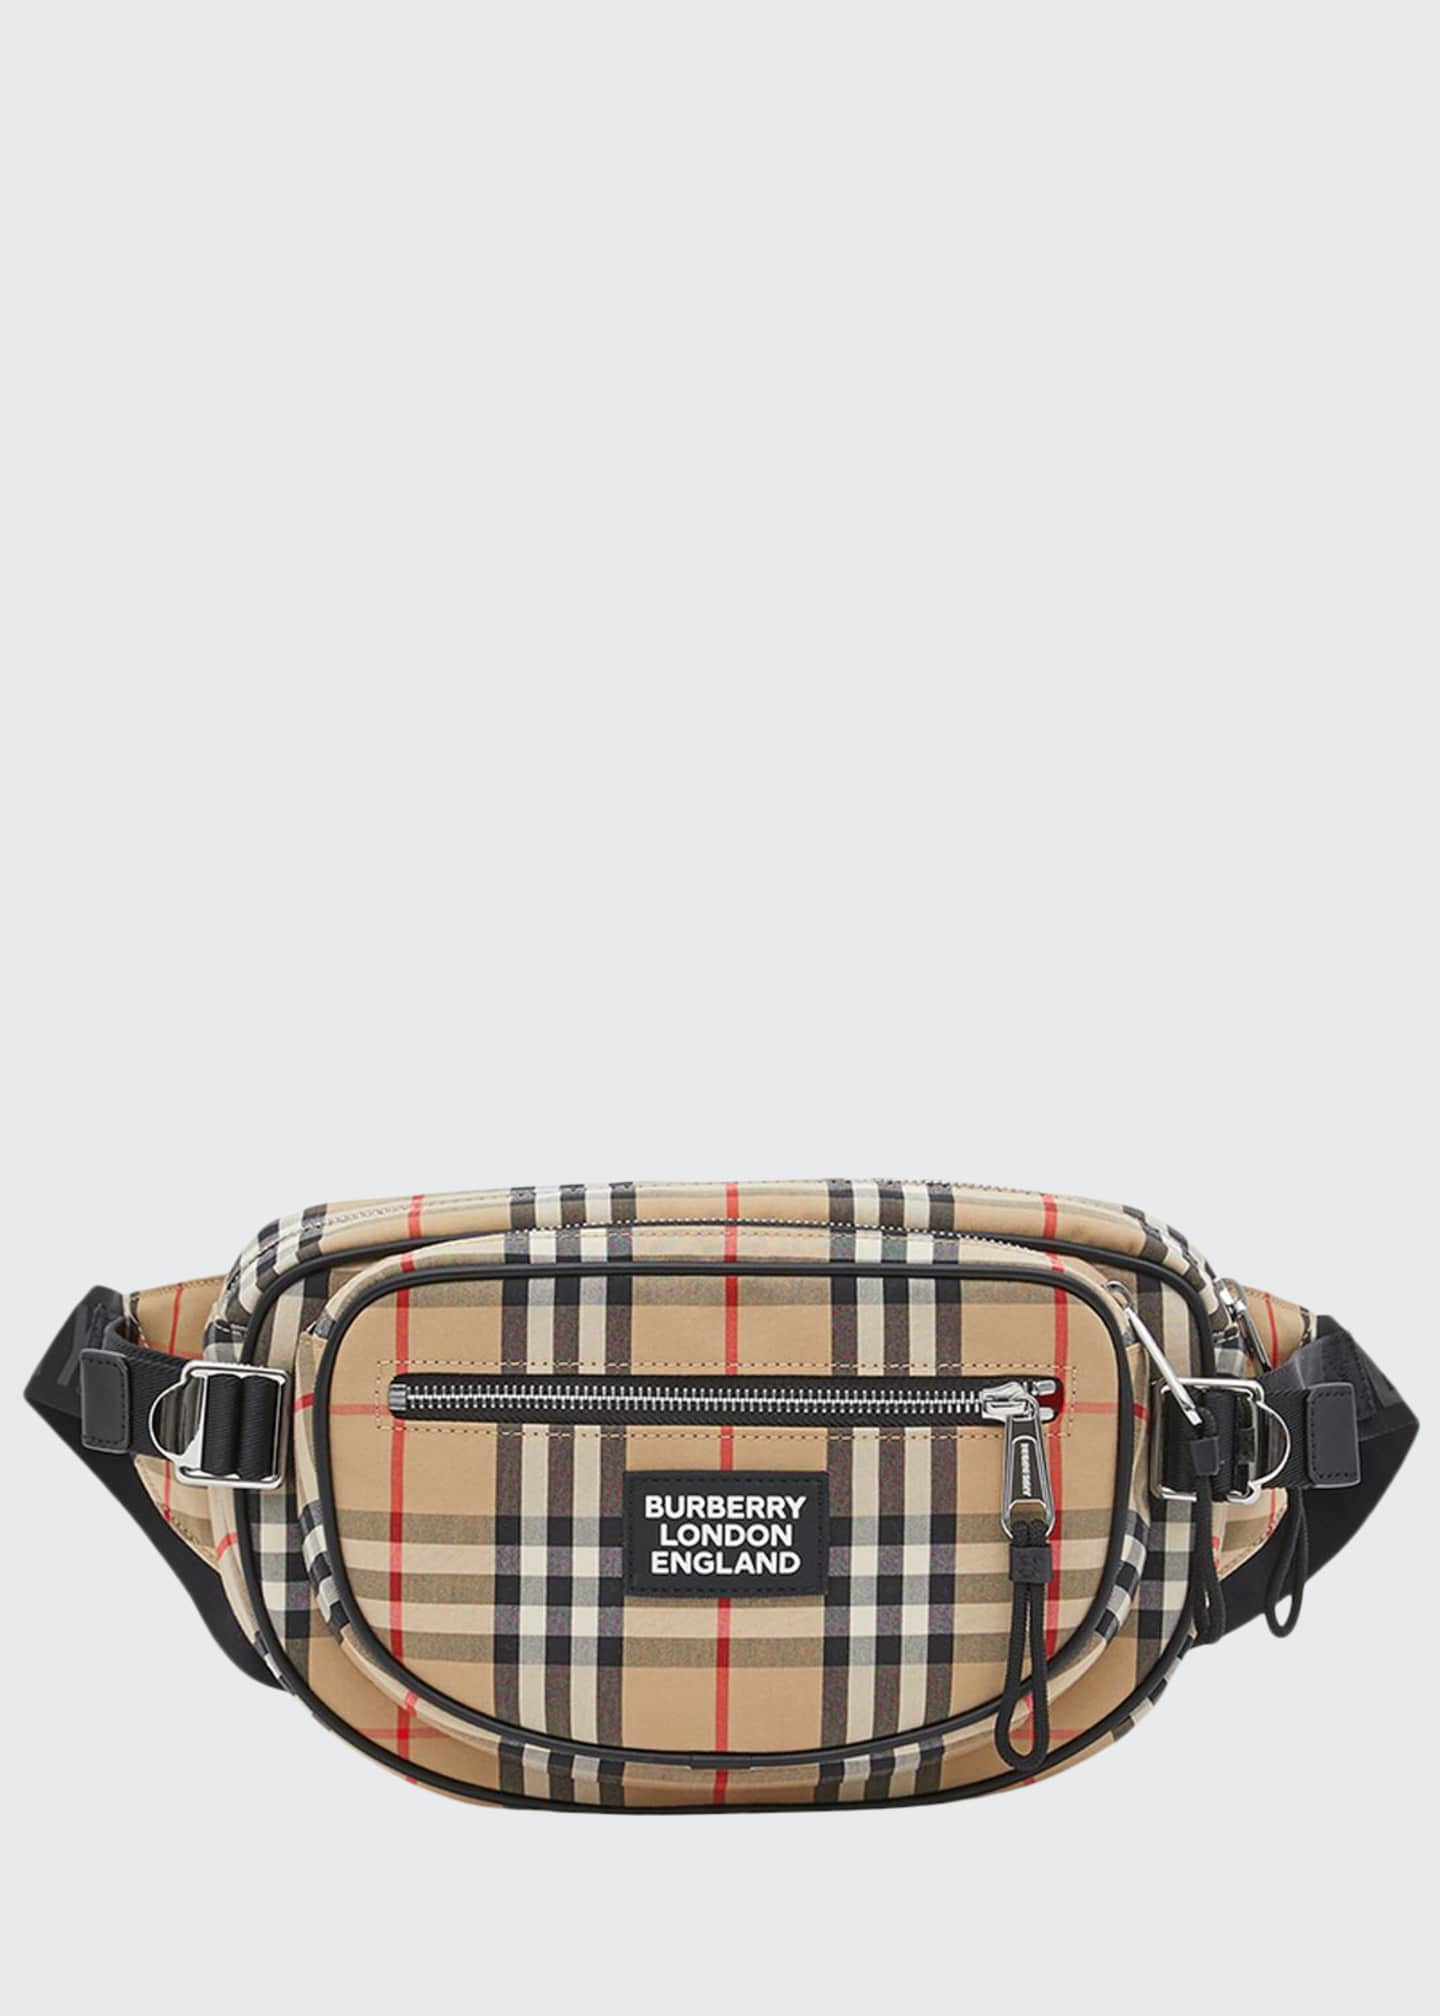 Burberry Men's Cannon Vintage Check Crossbody Belt Bag